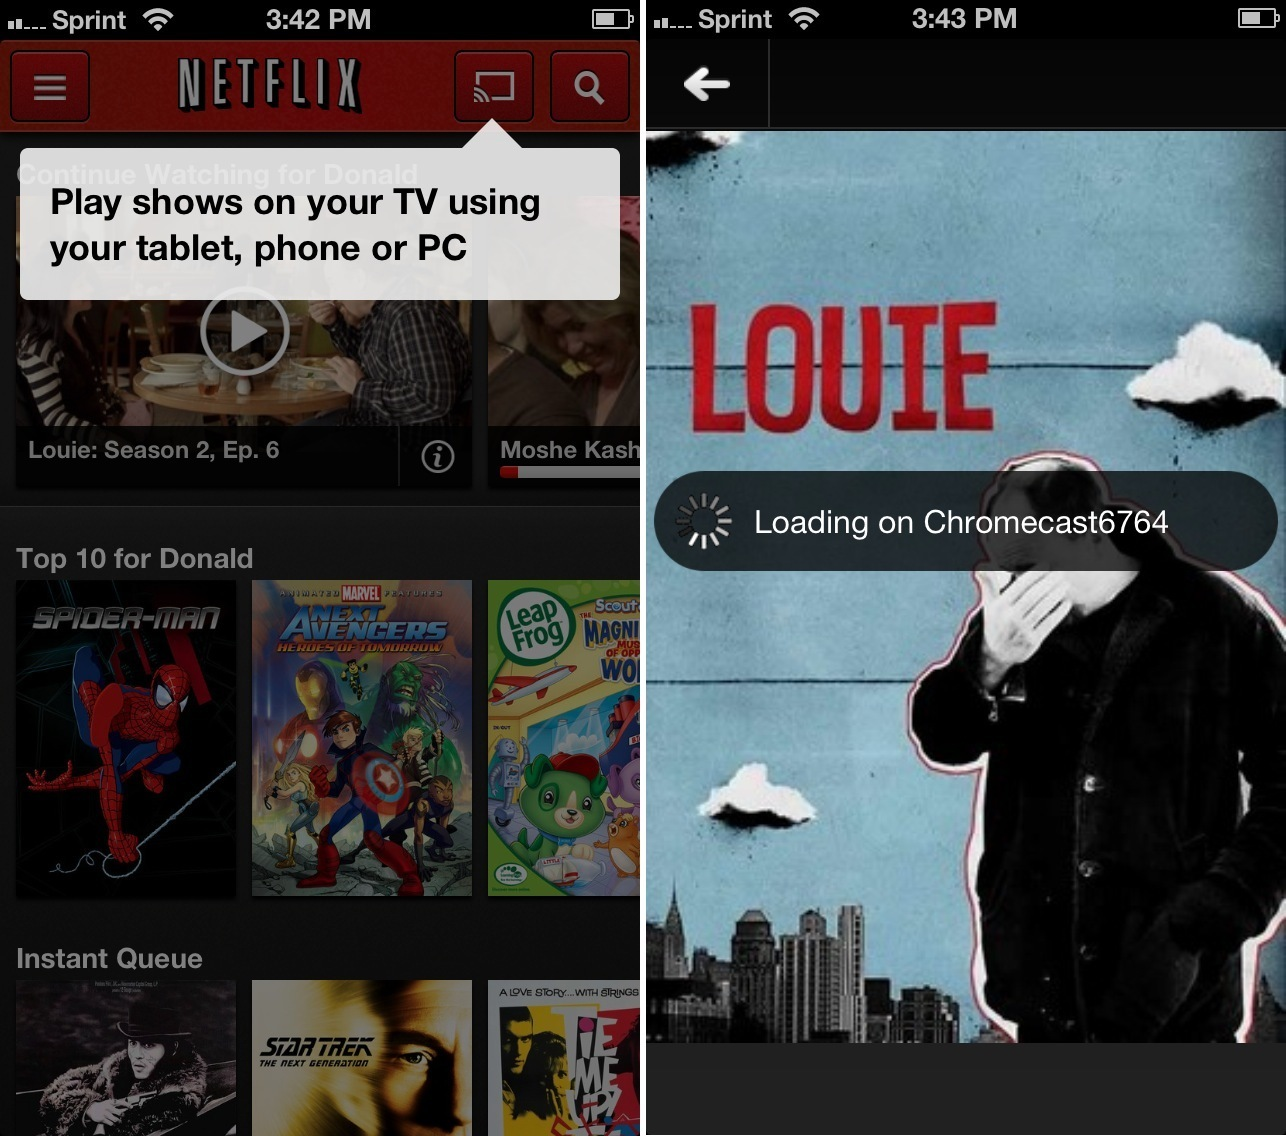 Netflix app using Chromecast.